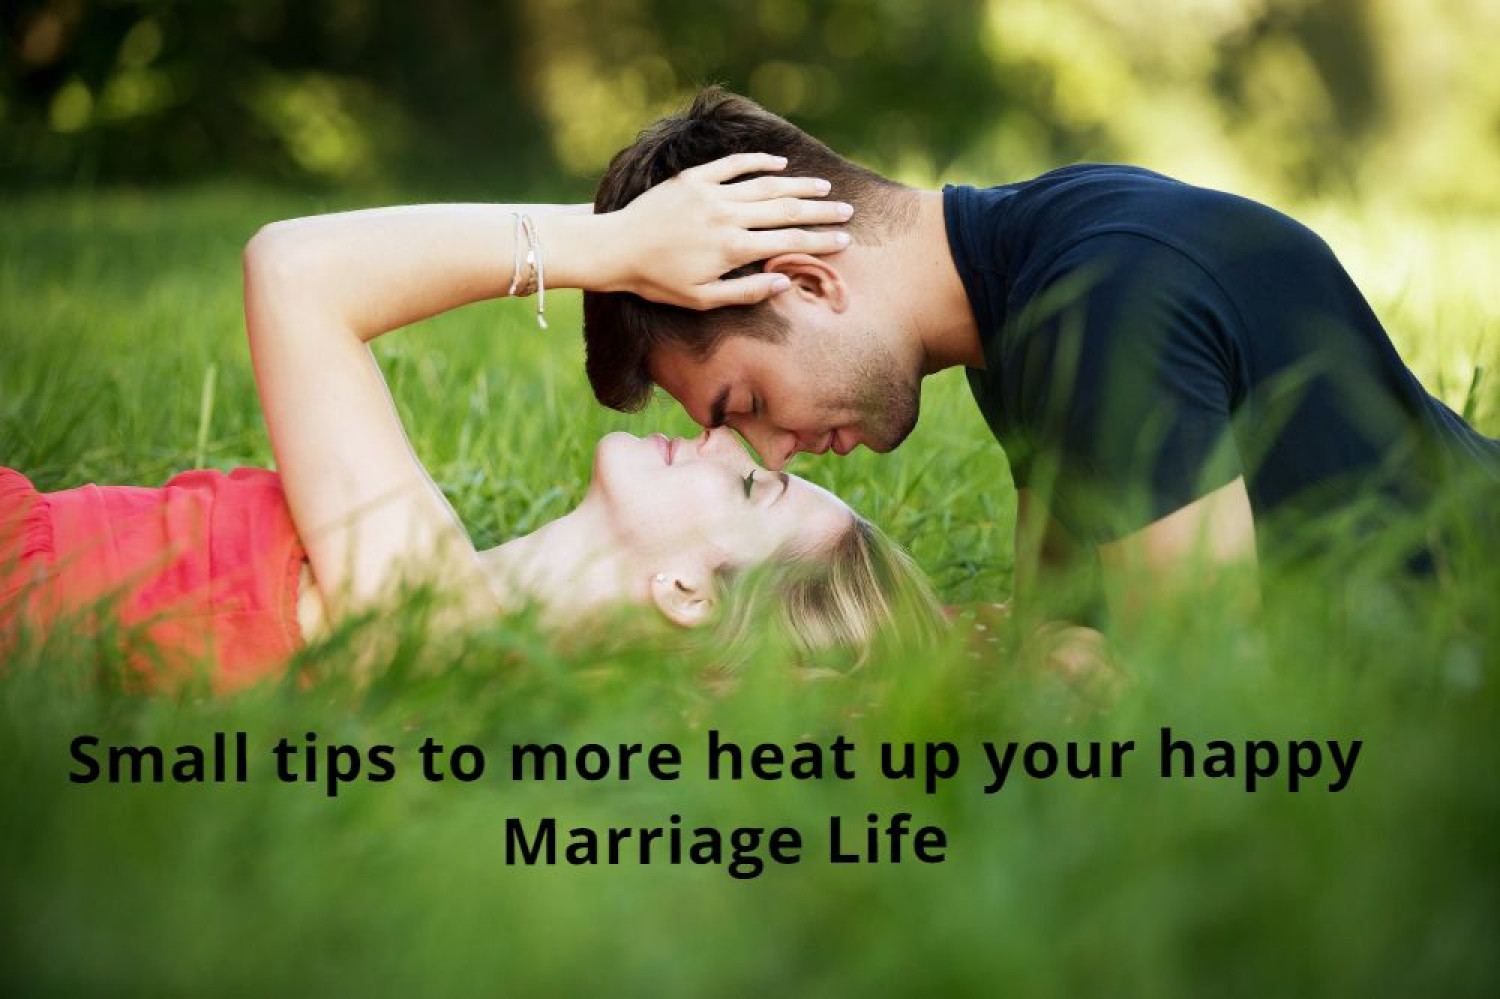 Small tips to more heat up your happy Marriage Life Infographic